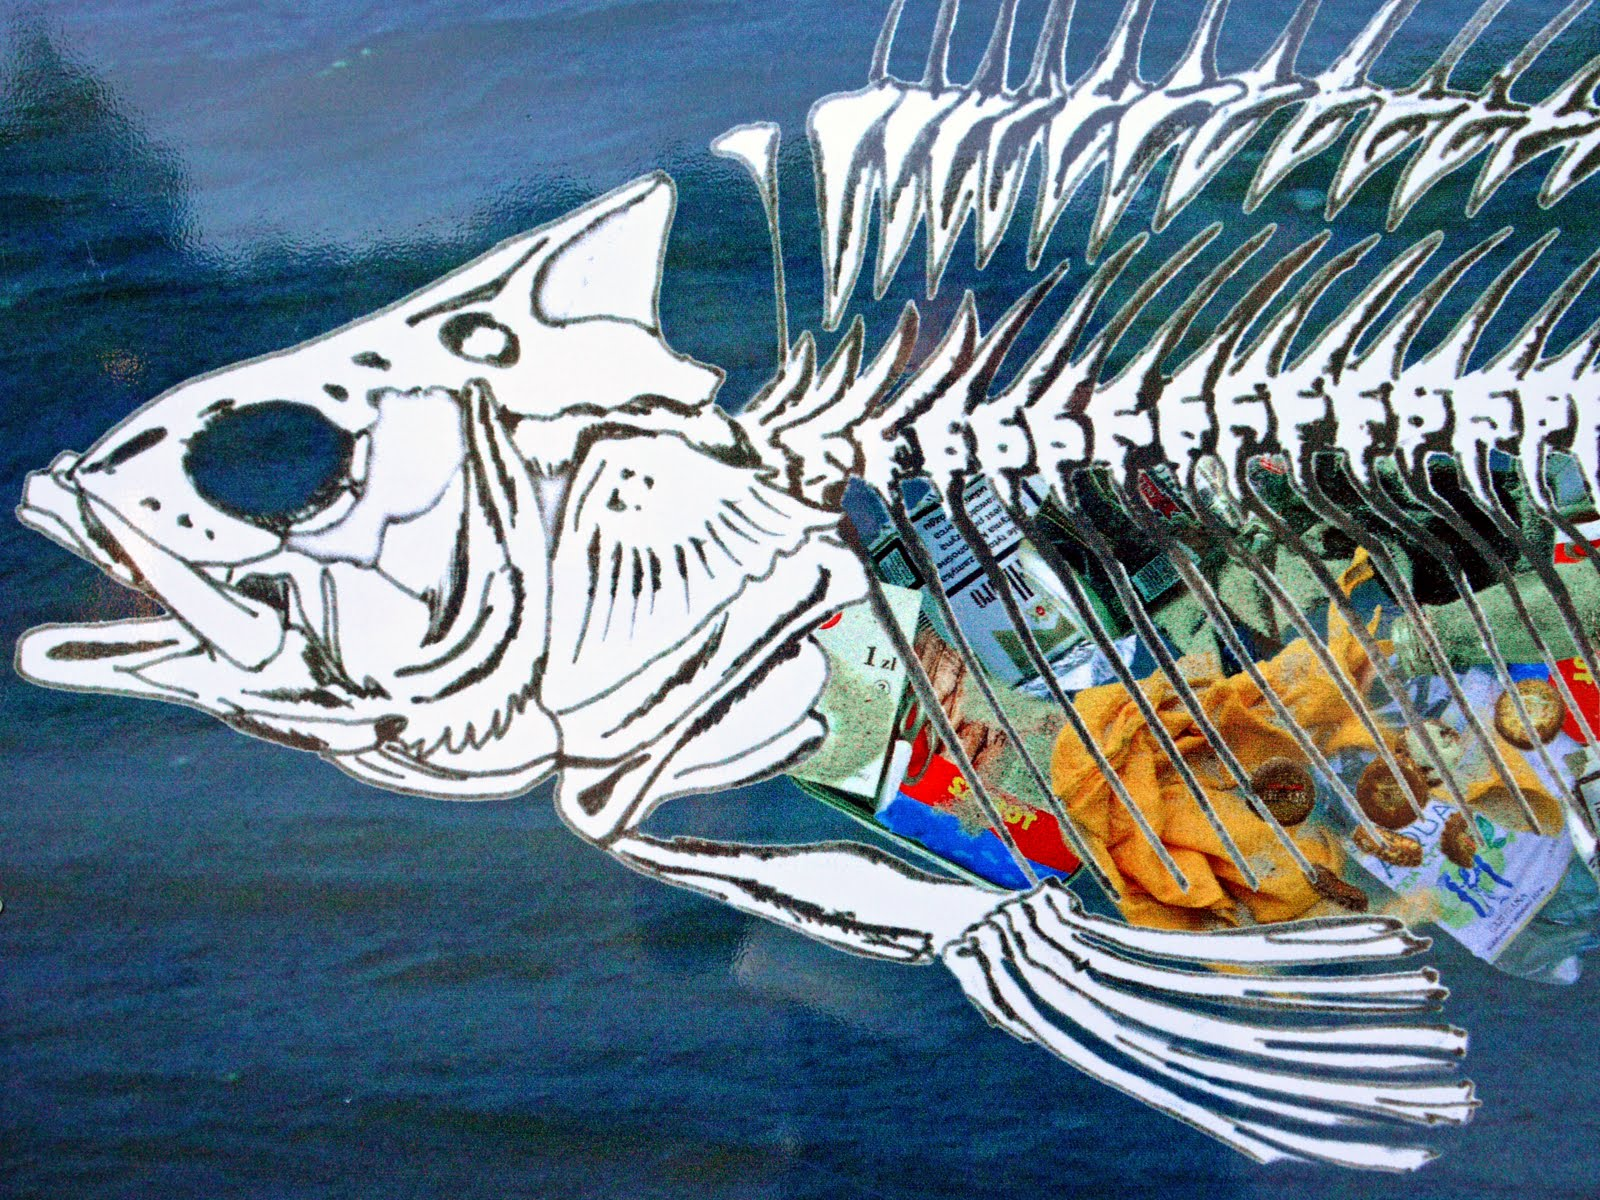 Fish skelleton with loads of plastic in its belly showing the harm of plastic to marine wildlife